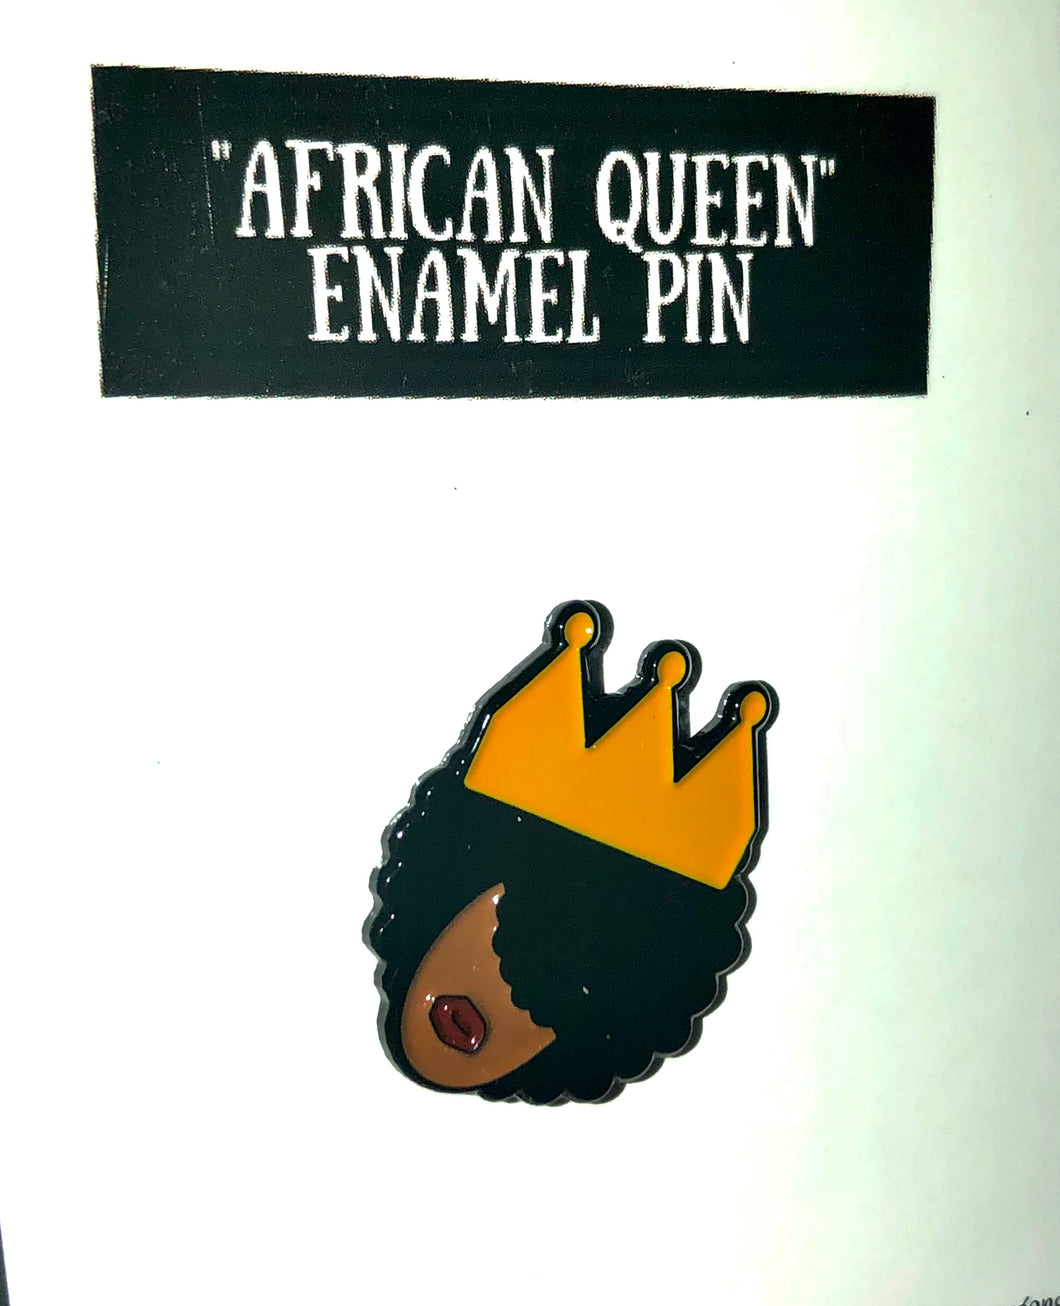 African queen enamel pin